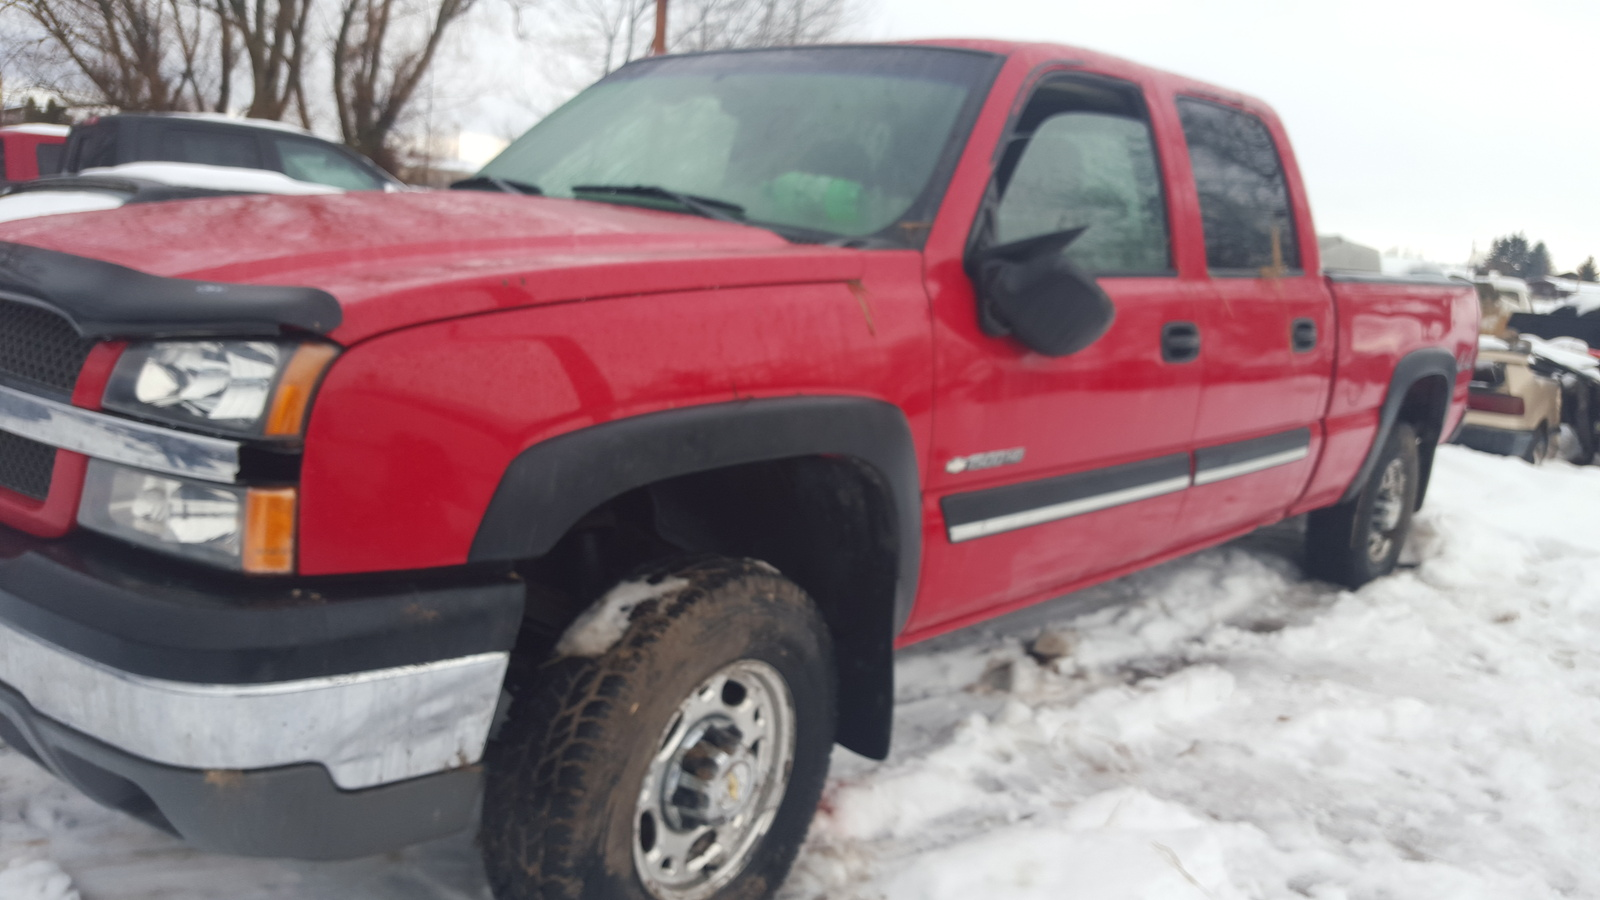 All Chevy chevy 2003 : All Chevy » 2003 Chevy 1500hd - Old Chevy Photos Collection, All ...